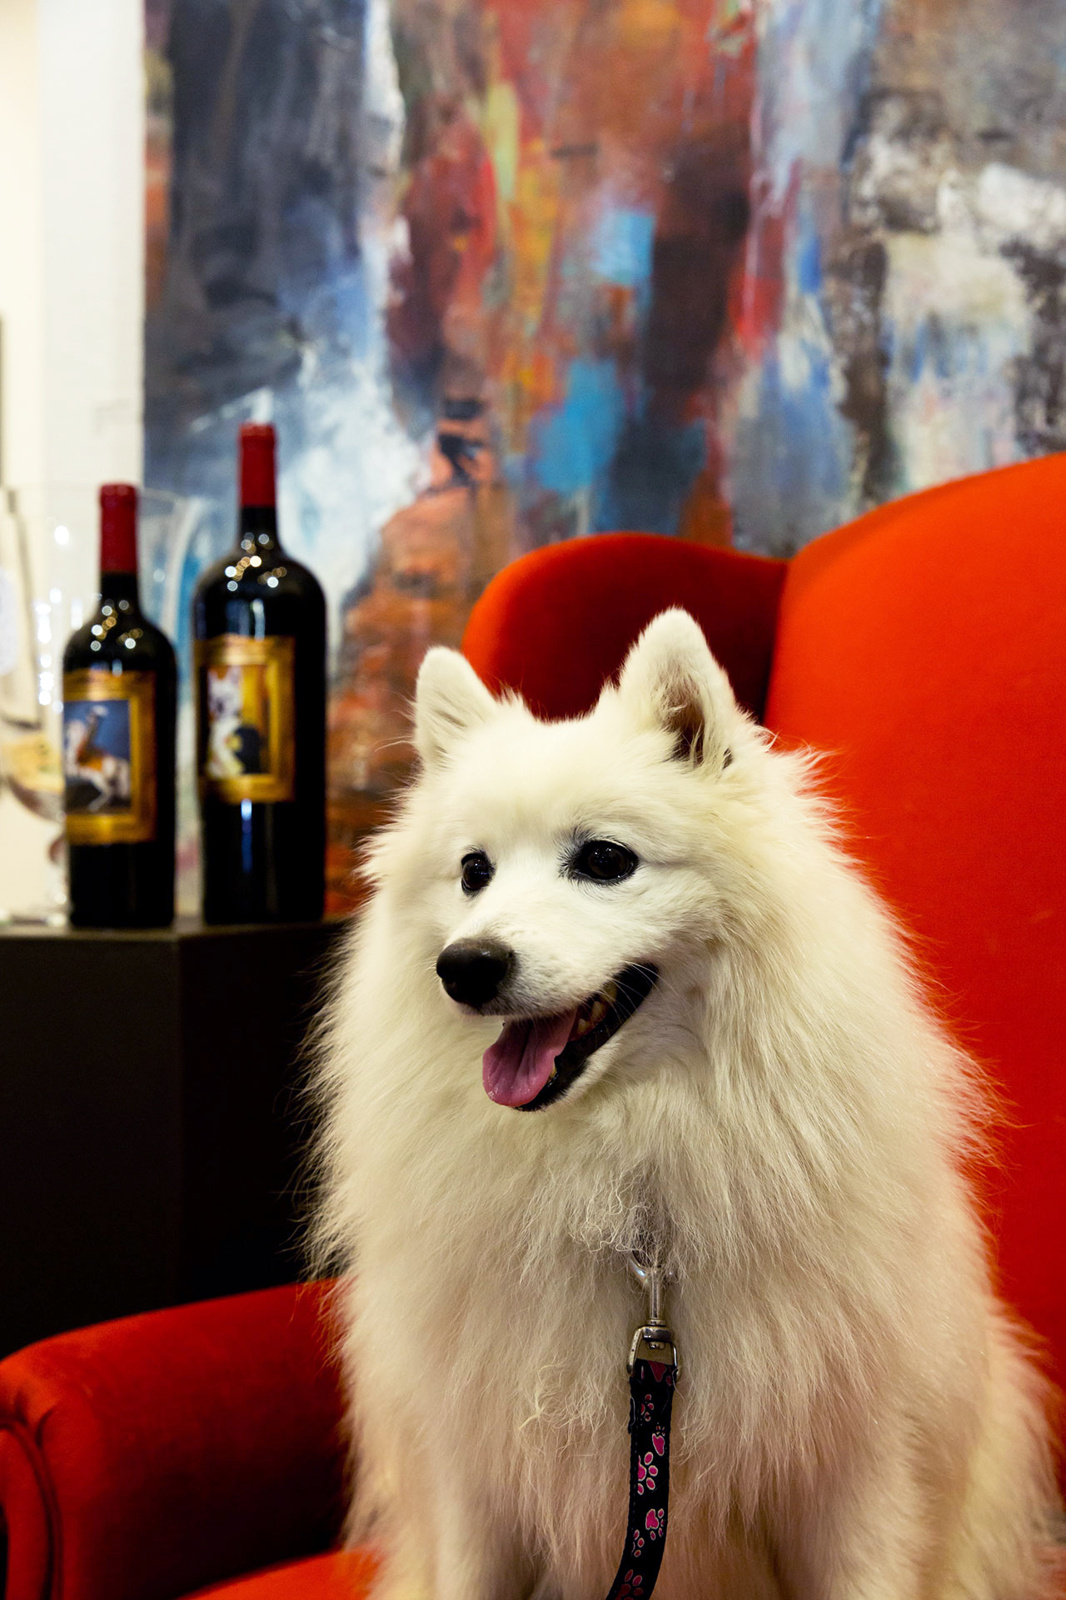 White dog sitting on red chair with 2 bottles of wine in back